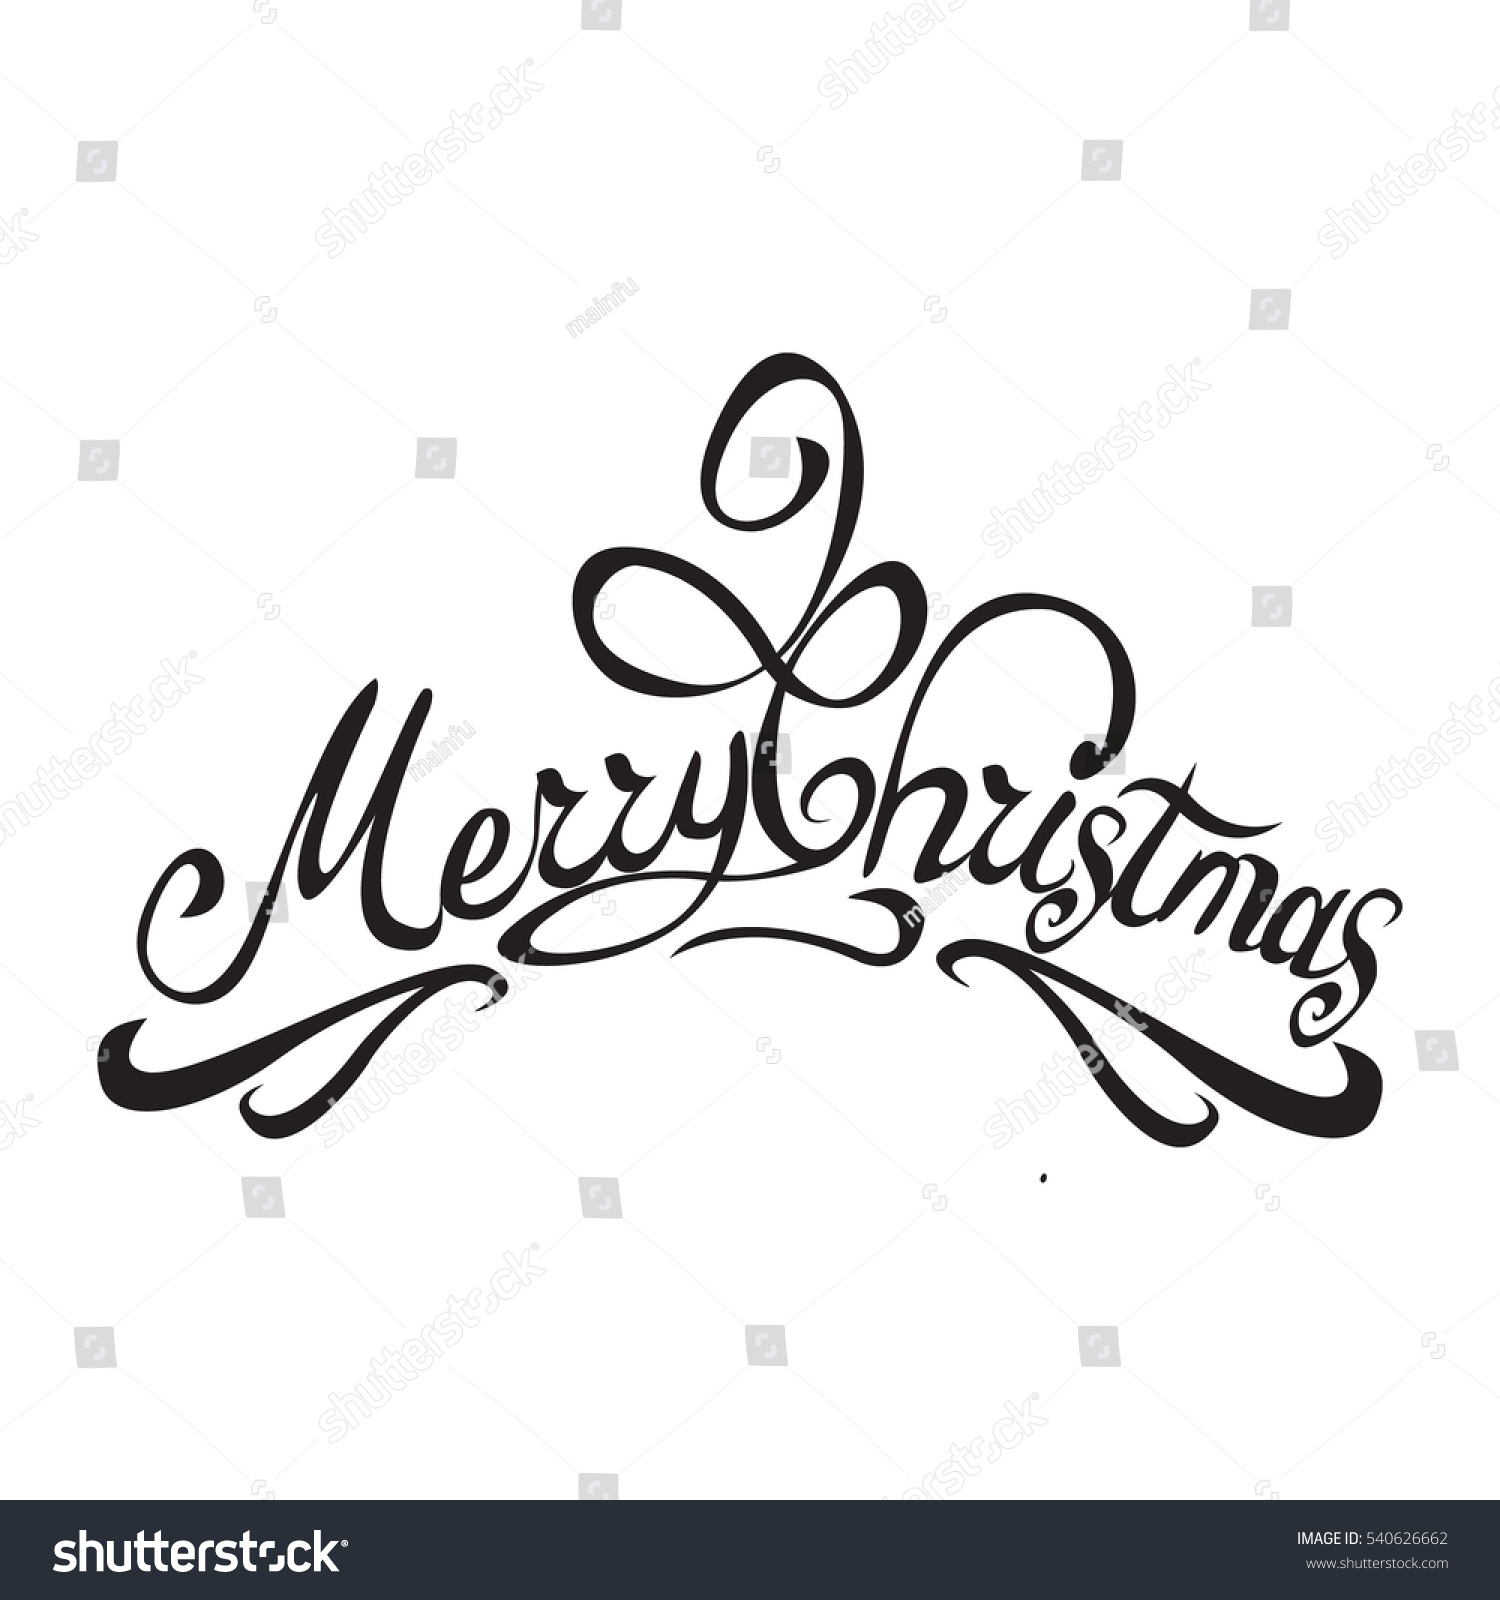 Merry Christmas Vector Text Calligraphic Lettering Stock